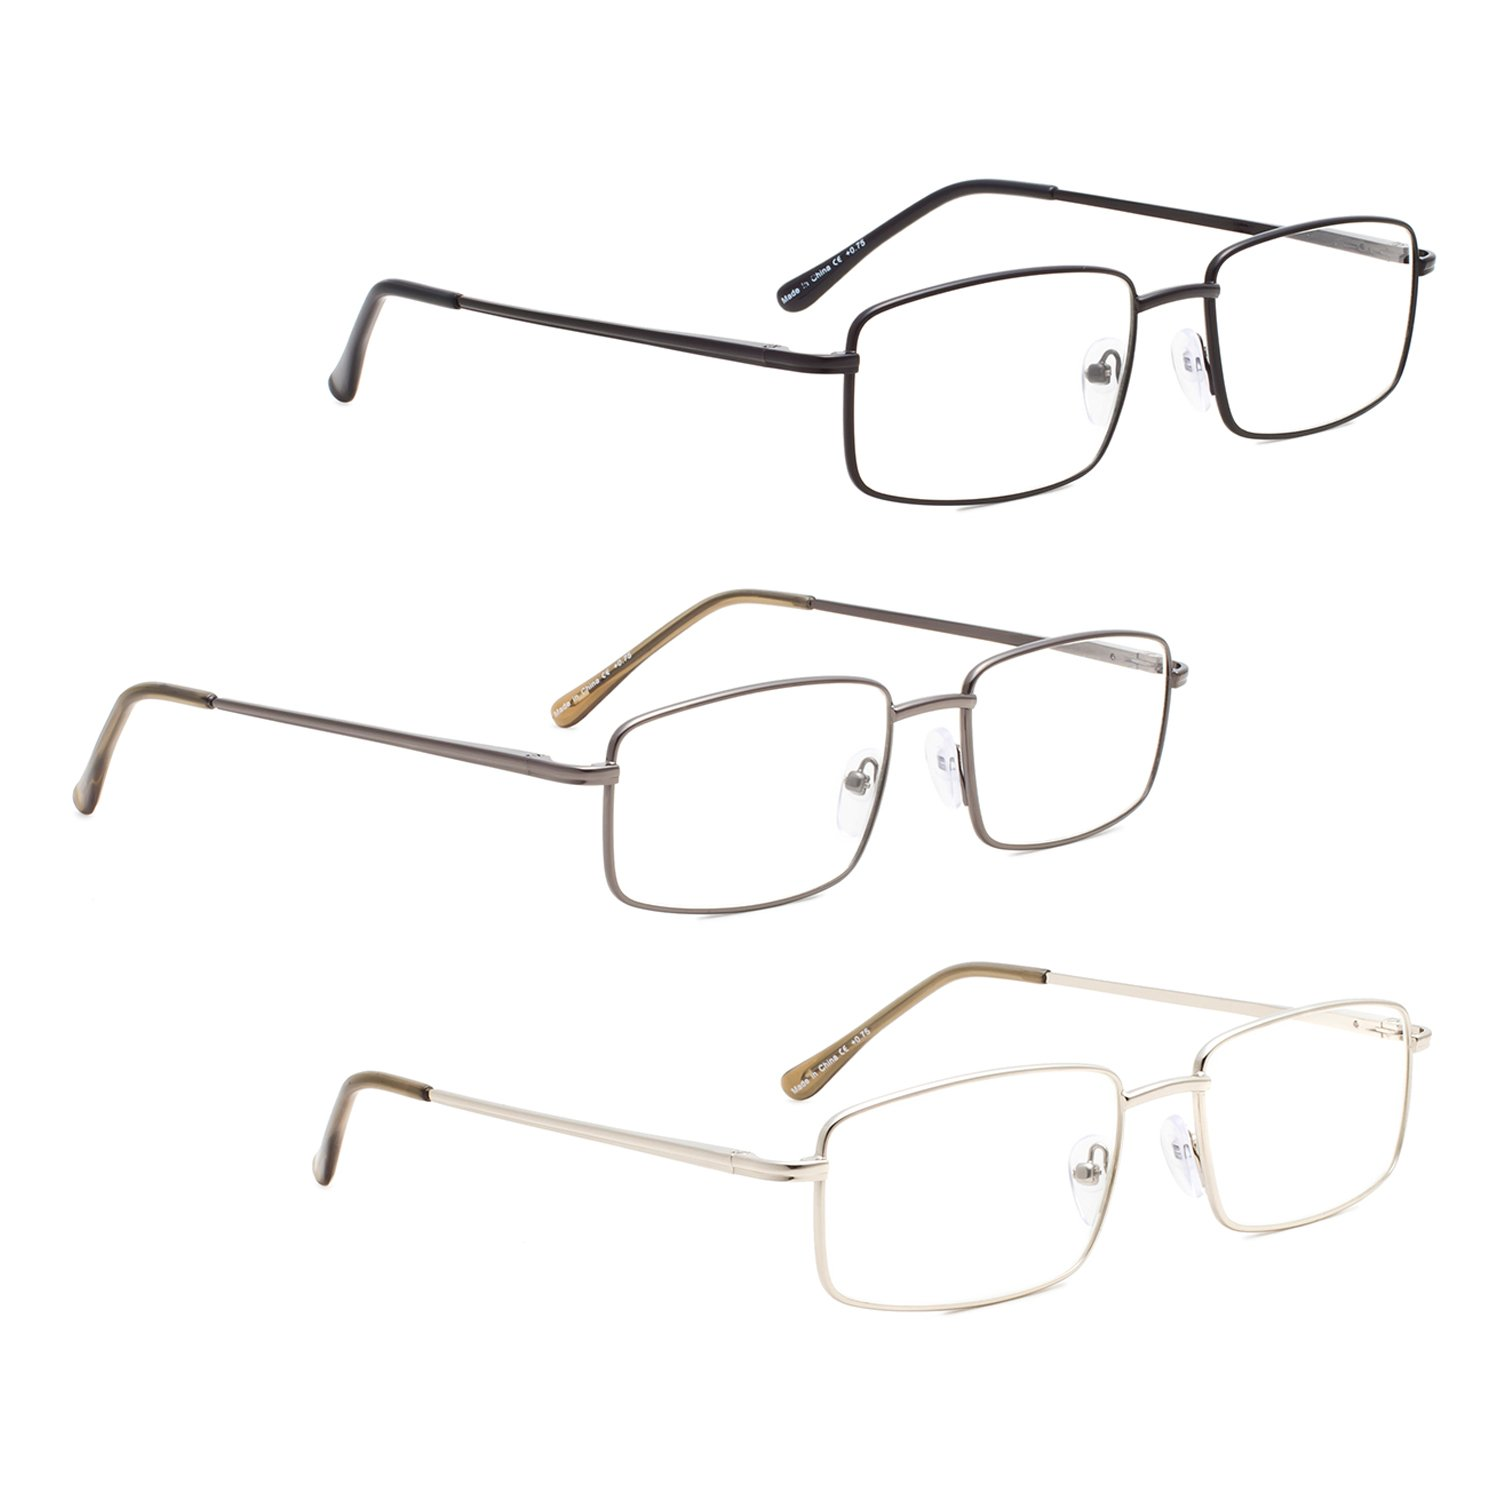 READING GLASSES 3 pack Metal Readers for Men LUR